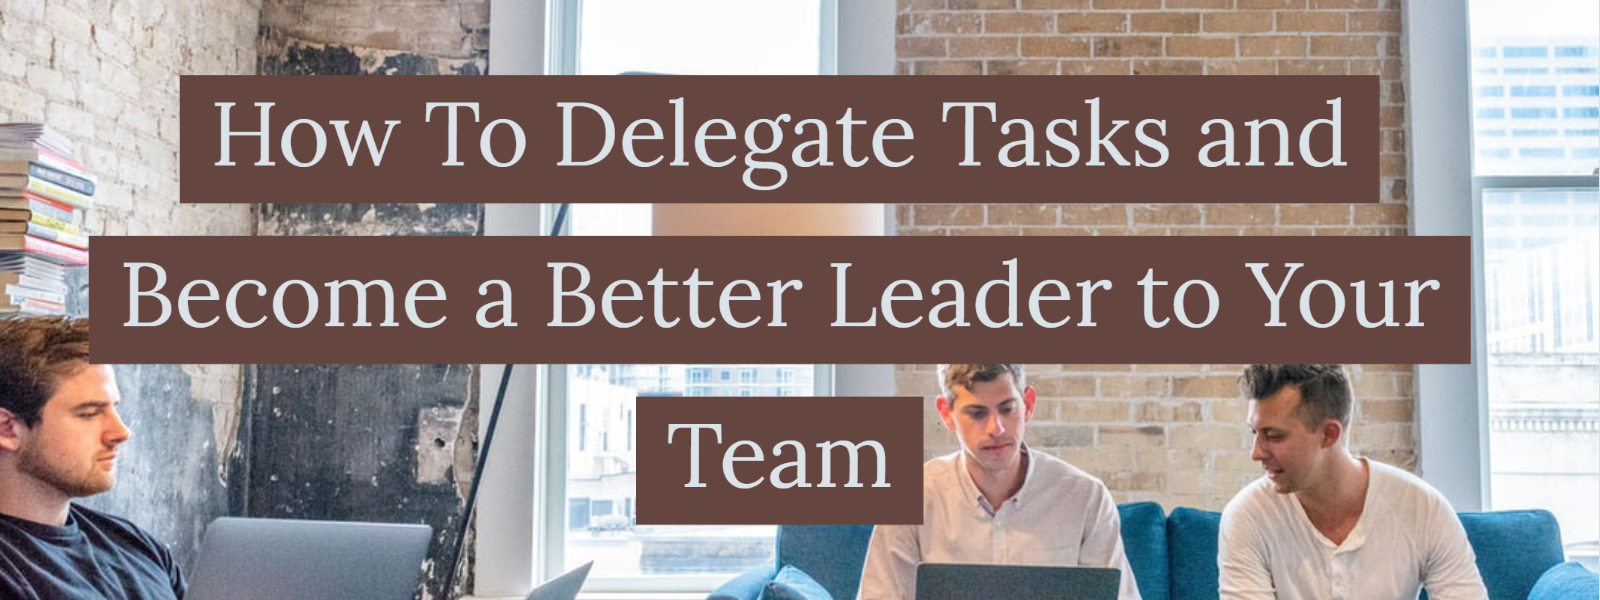 How To Delegate Tasks and Become a Better Leader to Your Team